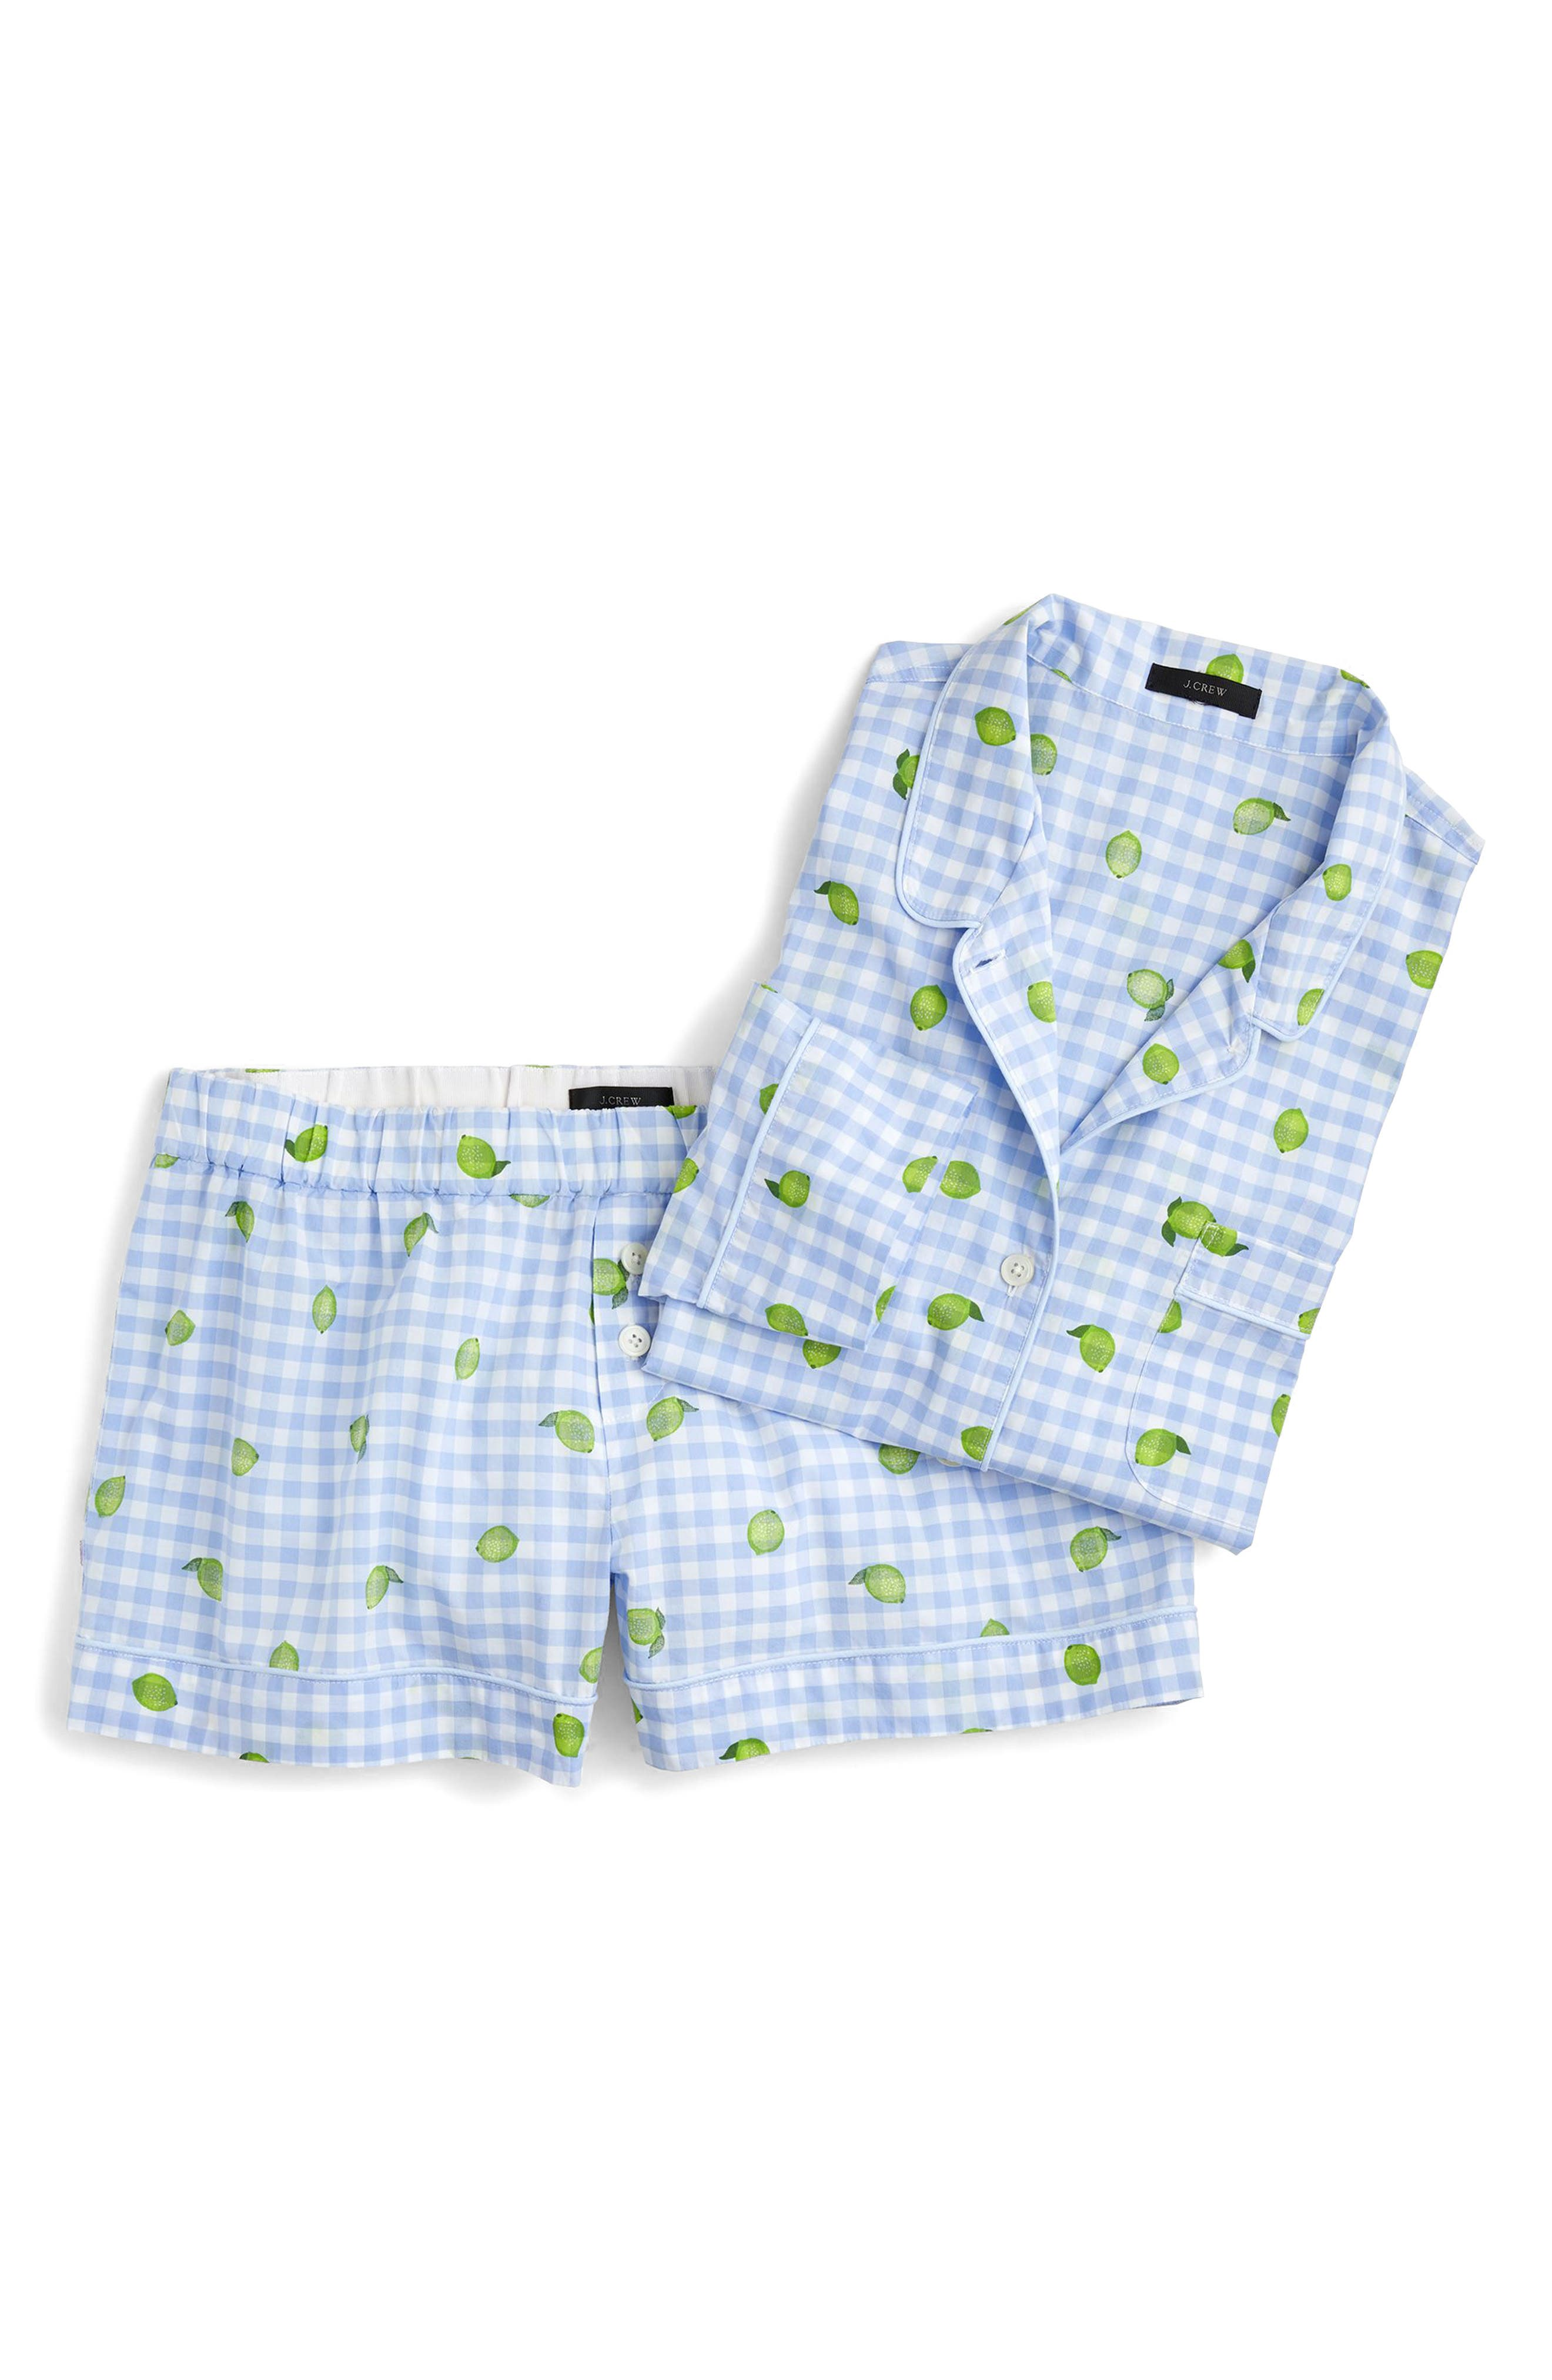 Lemon Lime Short Pajamas,                             Alternate thumbnail 3, color,                             PORT BLUE GREEN